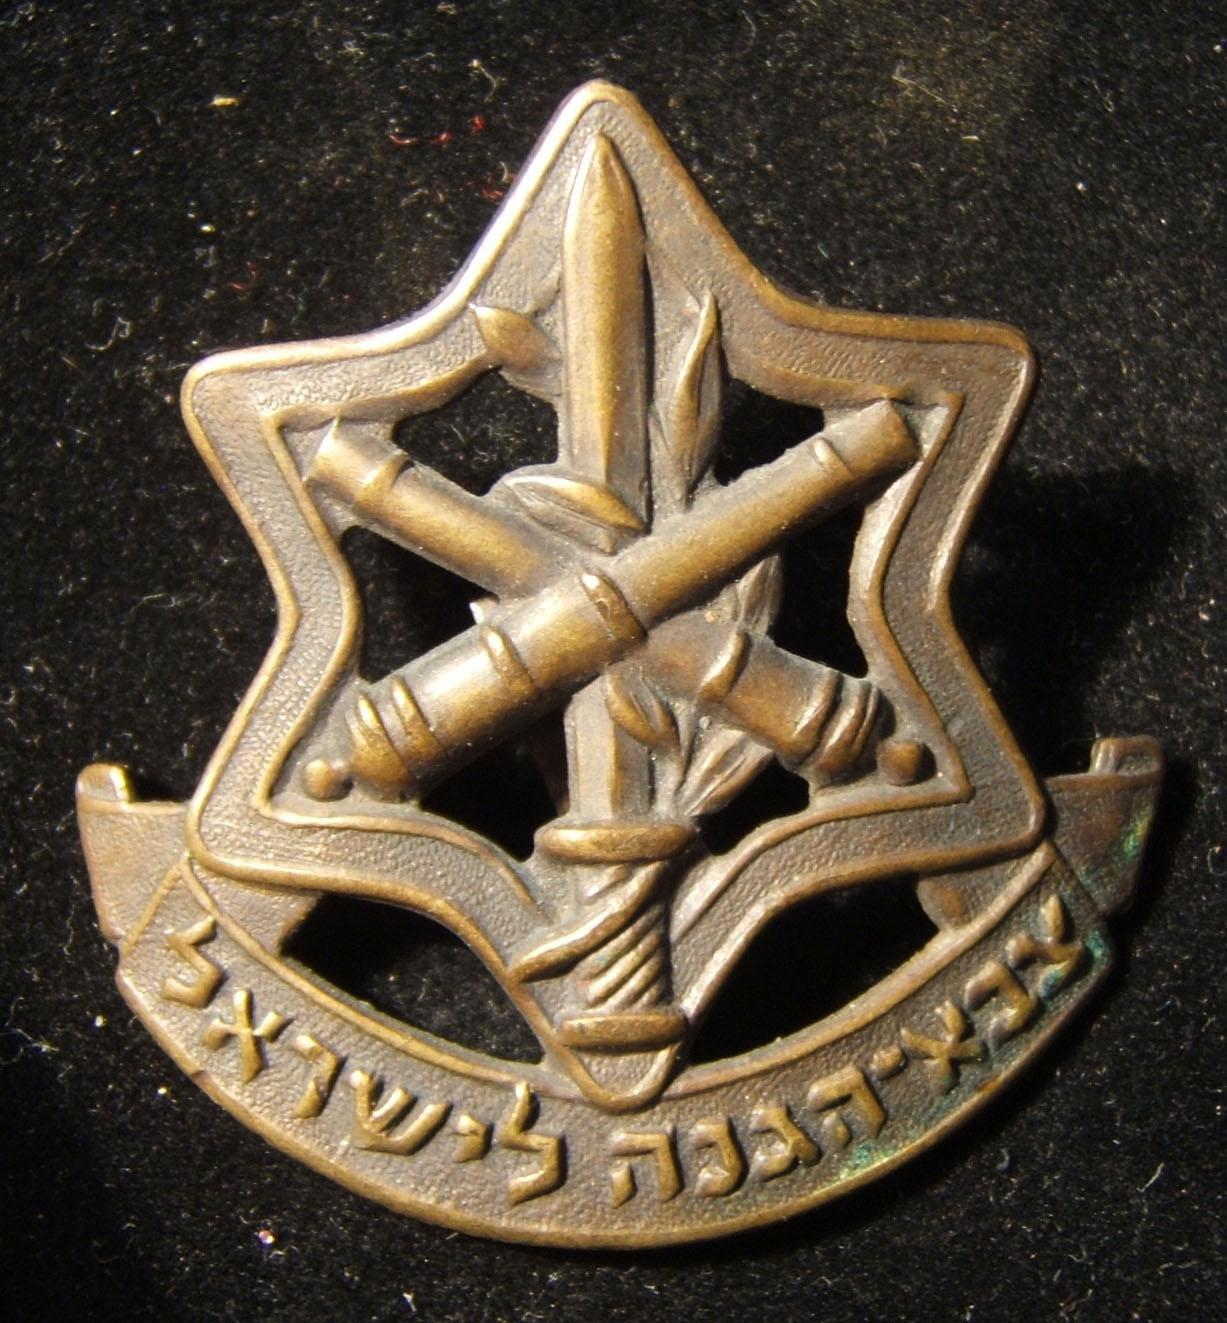 Rare early version of IDF Artillery Corps hat badge, circa. 1948-1949; 9.15g. This design was said to be unsuitable and subsequently replaced by a style similar to the other branch